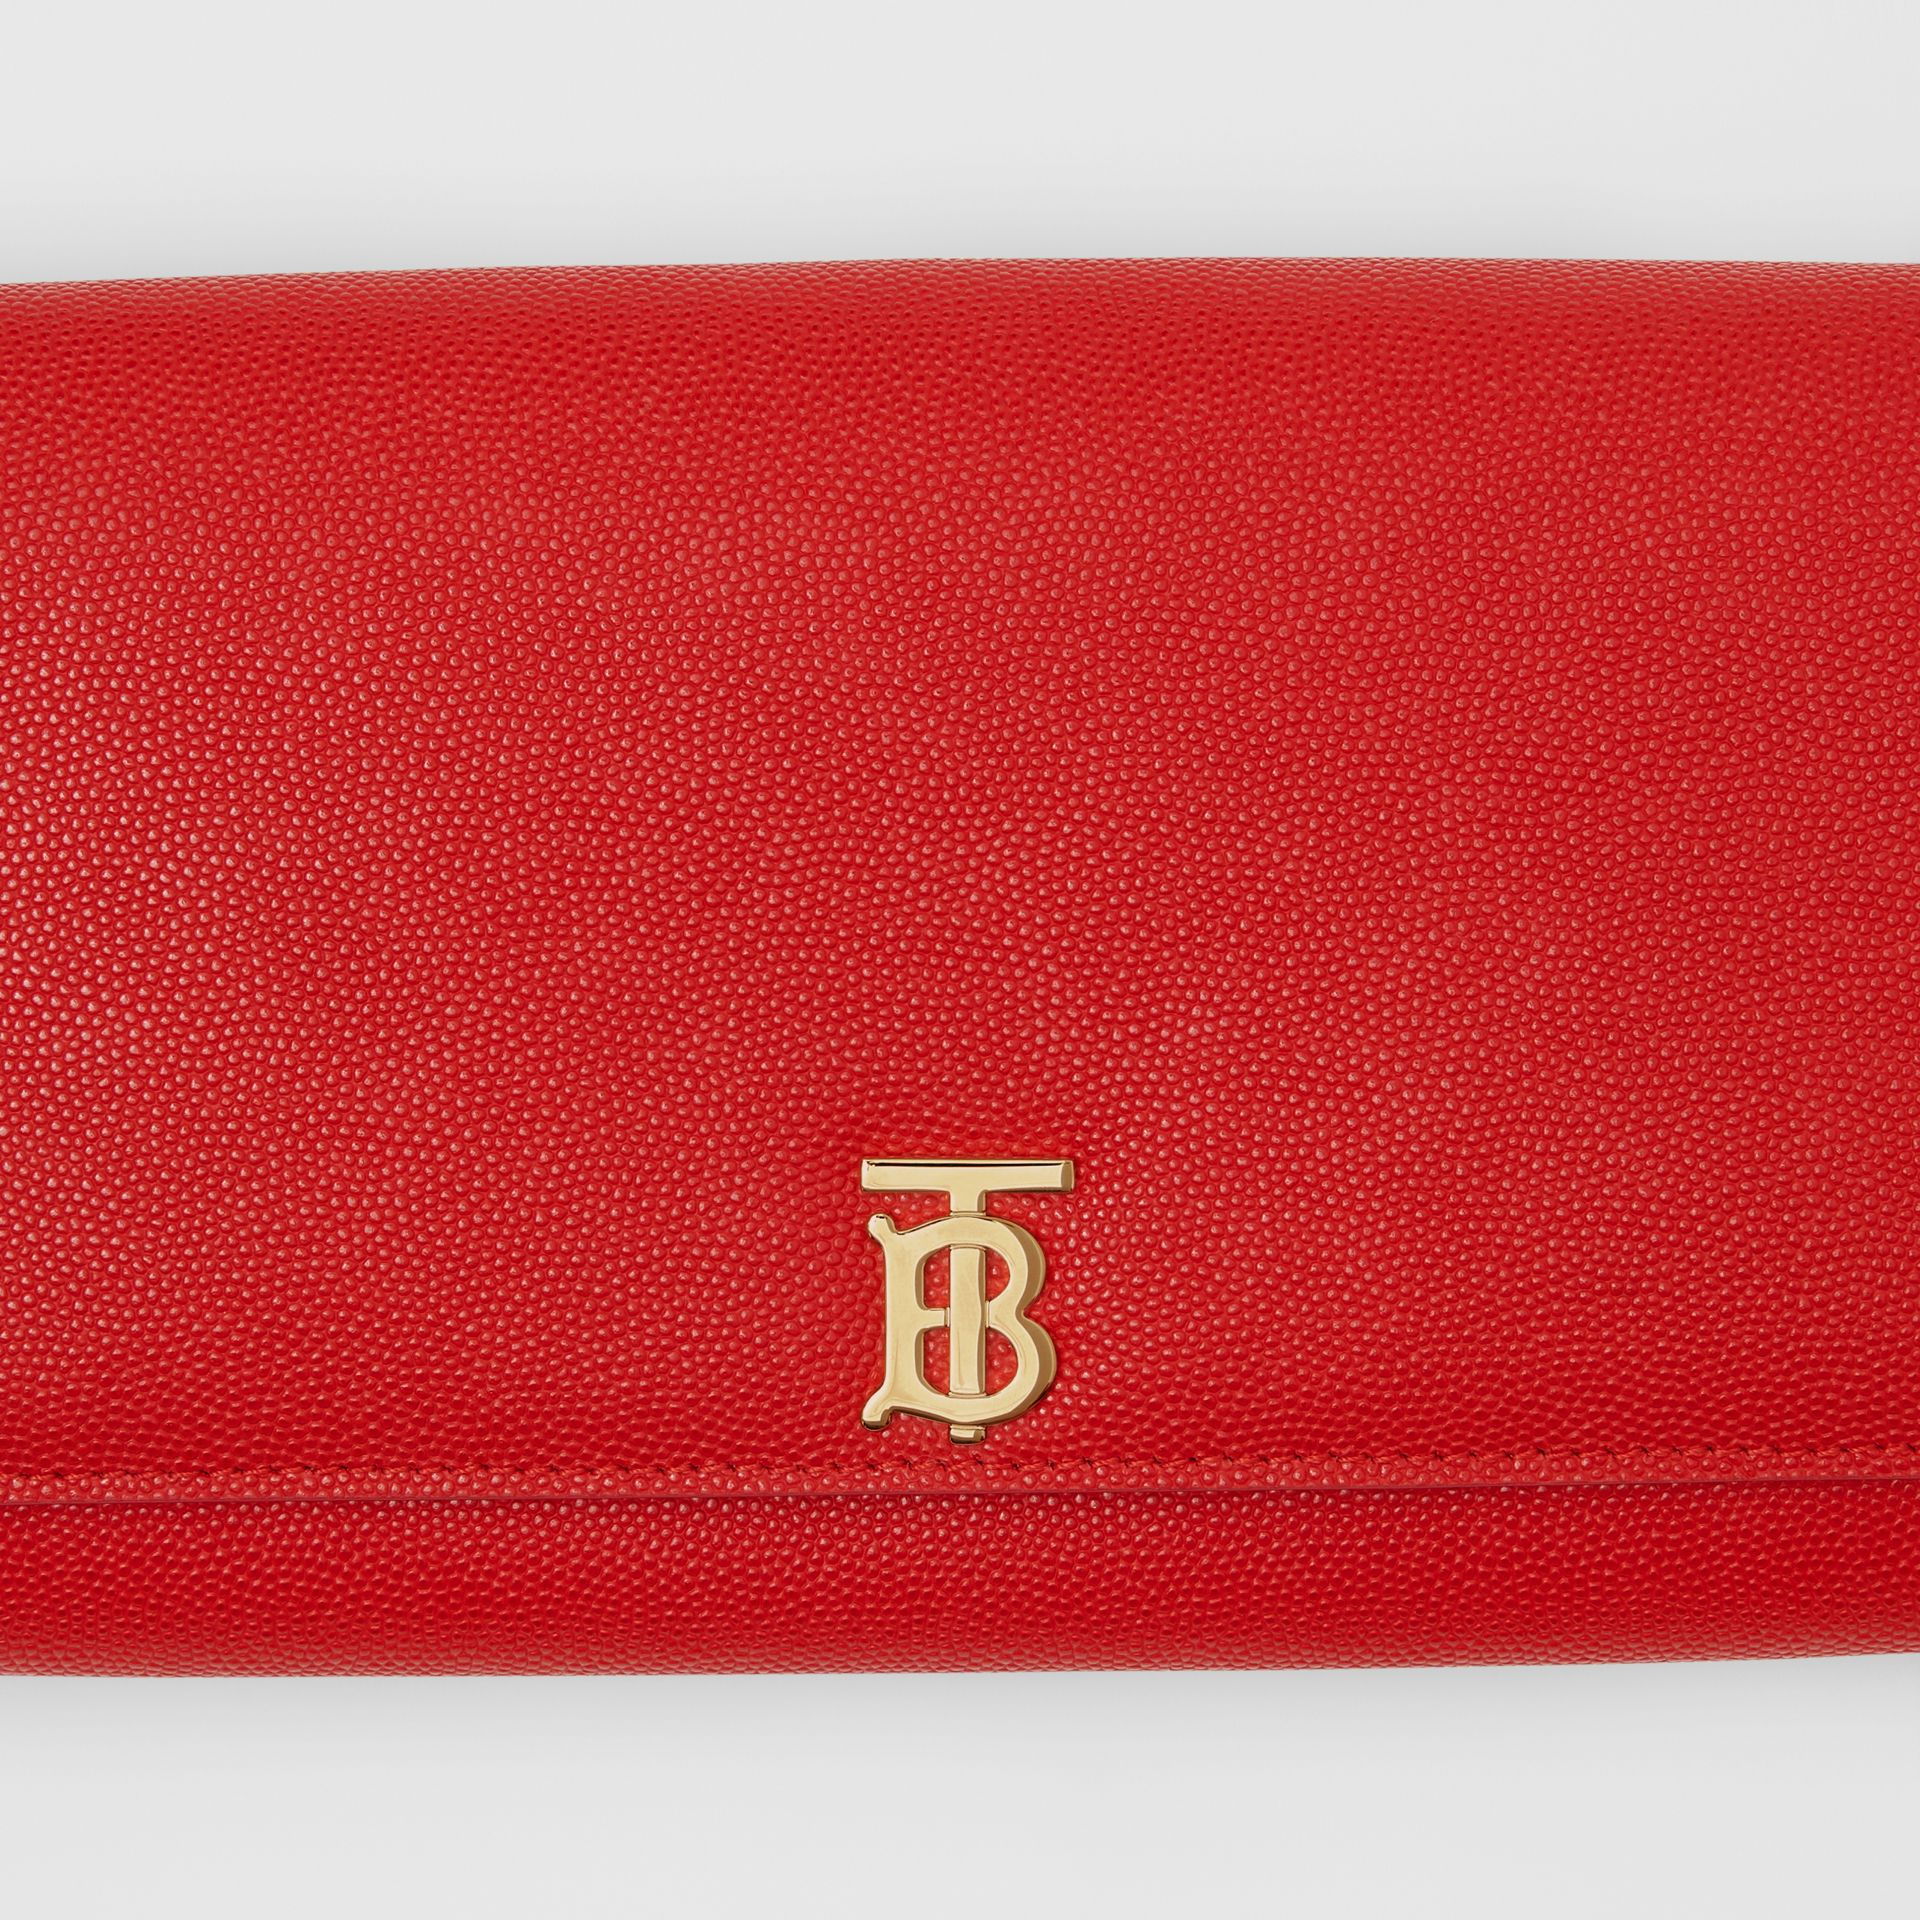 Monogram Motif Leather Wallet with Detachable Strap in Bright Red - Women | Burberry - gallery image 1